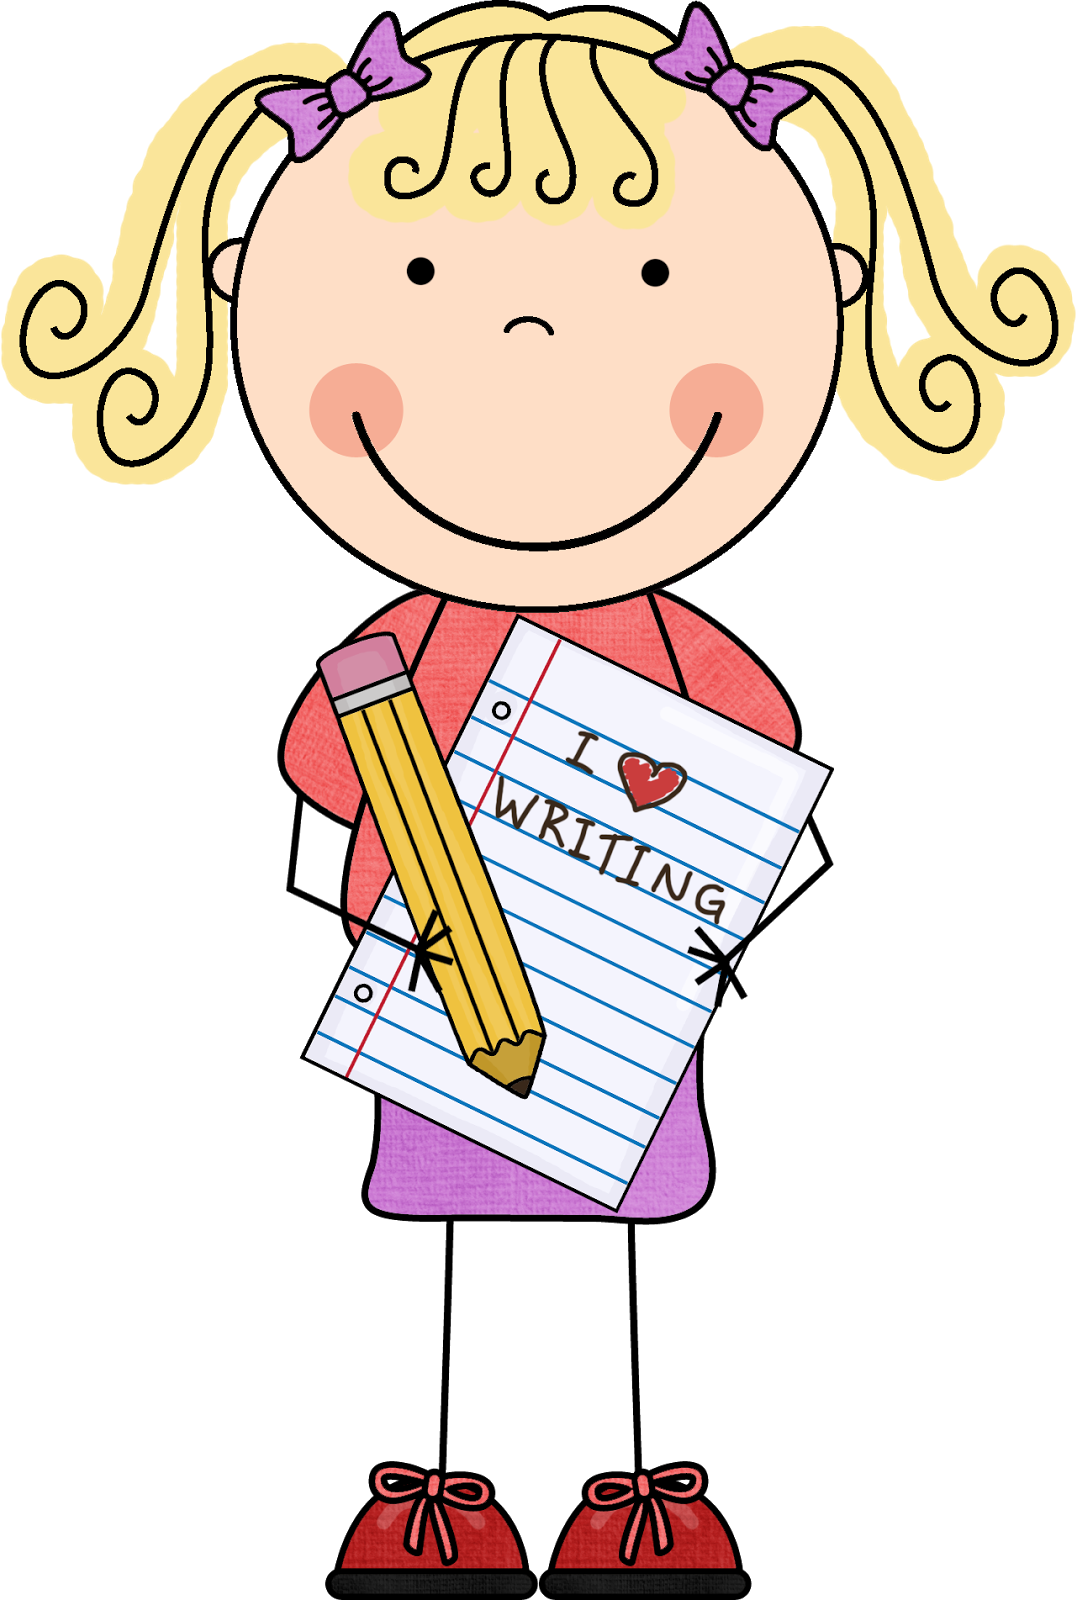 png royalty free stock Work on writing clipart. Image of girl clipartoons